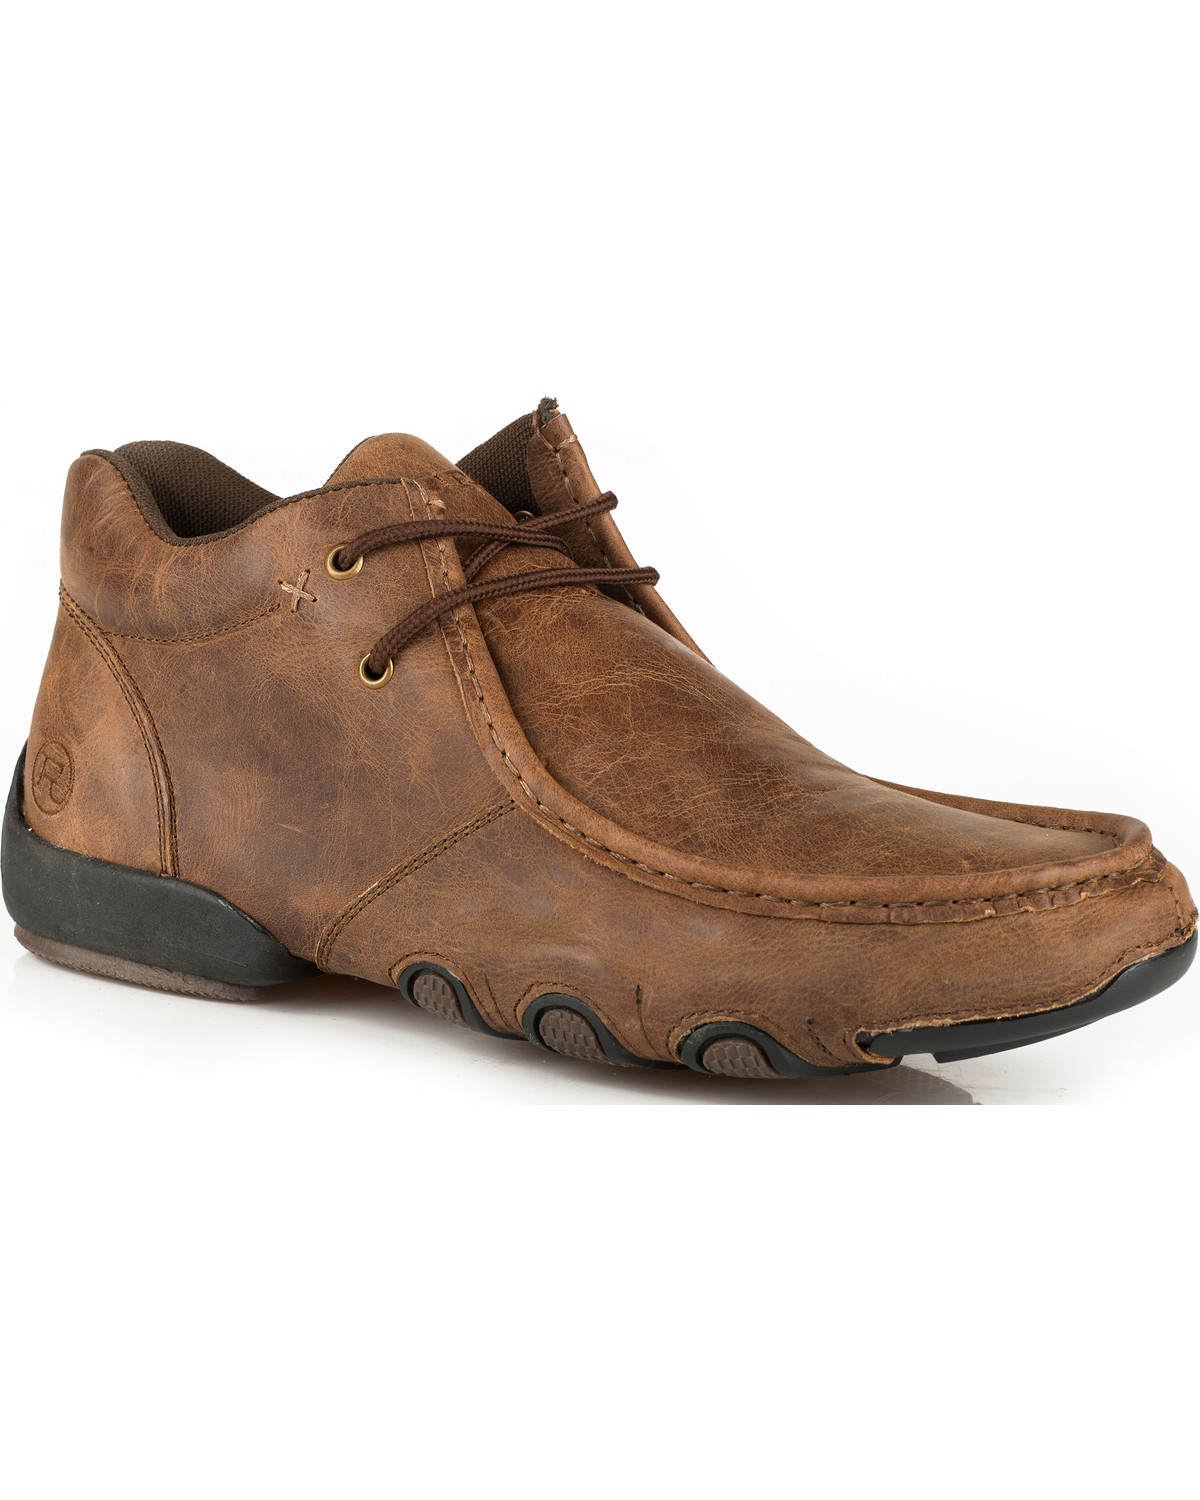 Roper Men's Brown Leather 2 Eye Lace Up